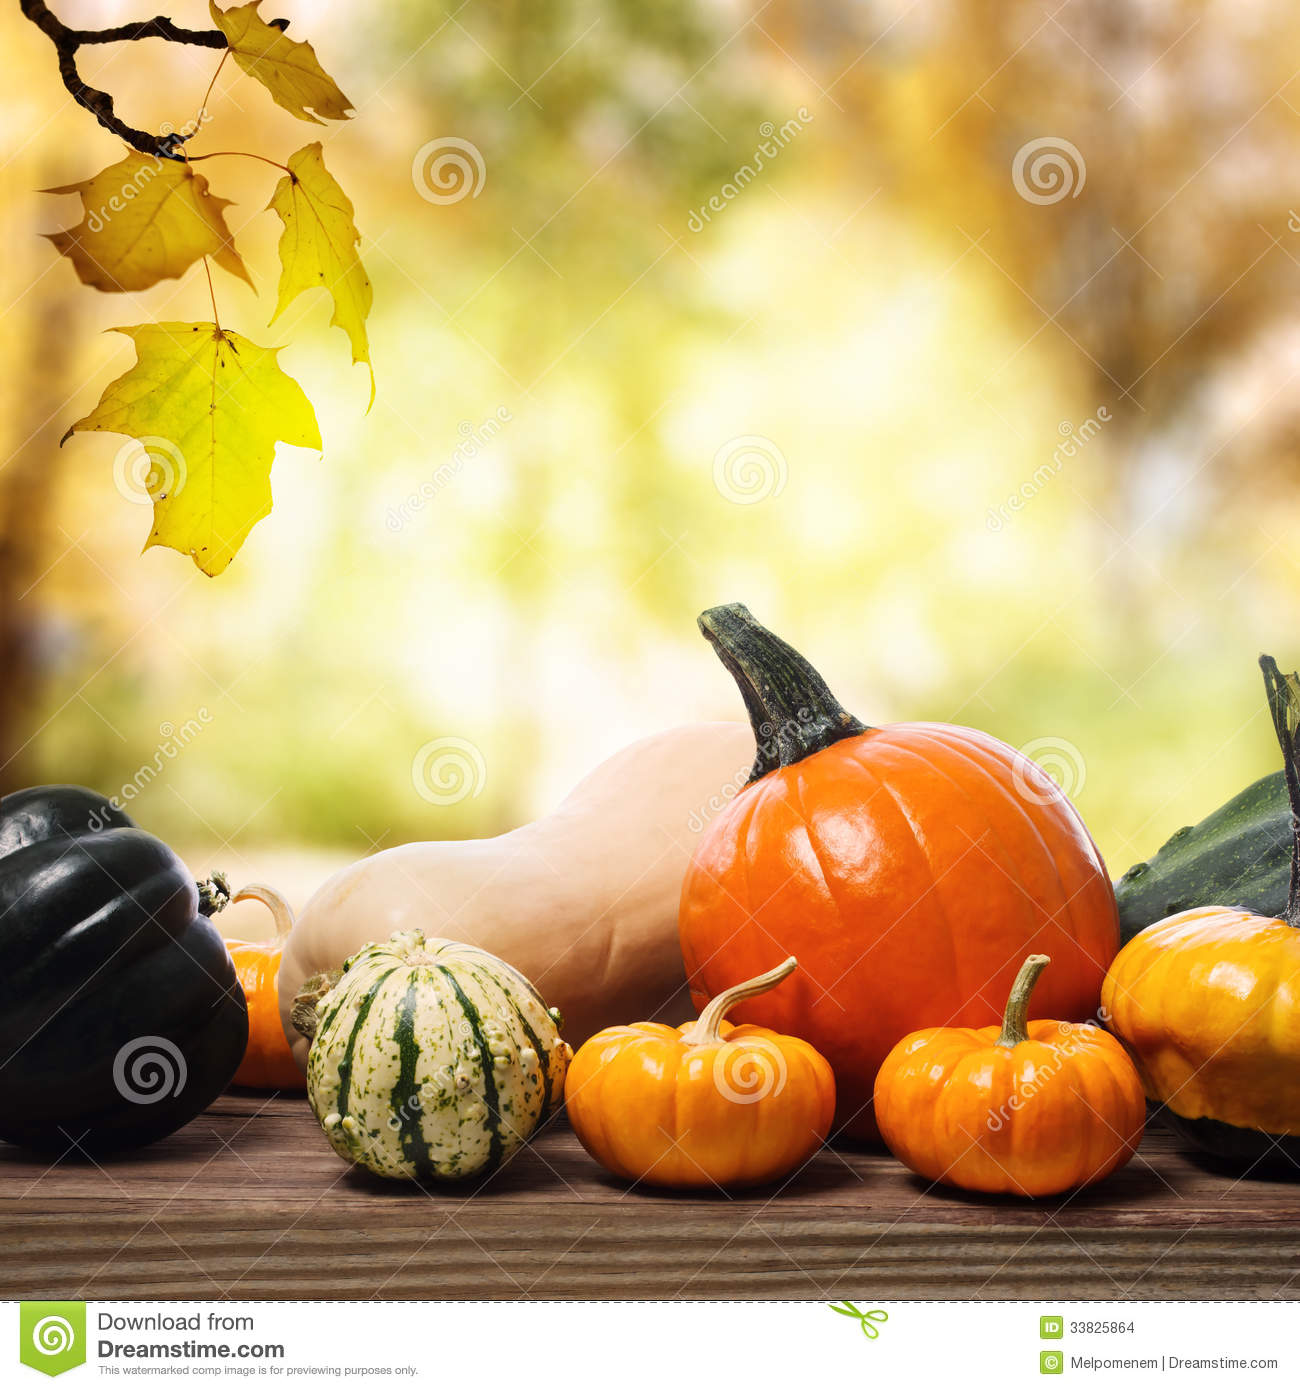 Fall Leaves Wallpaper Windows 7 Pumpkins And Squashes With A Shinning Fall Background